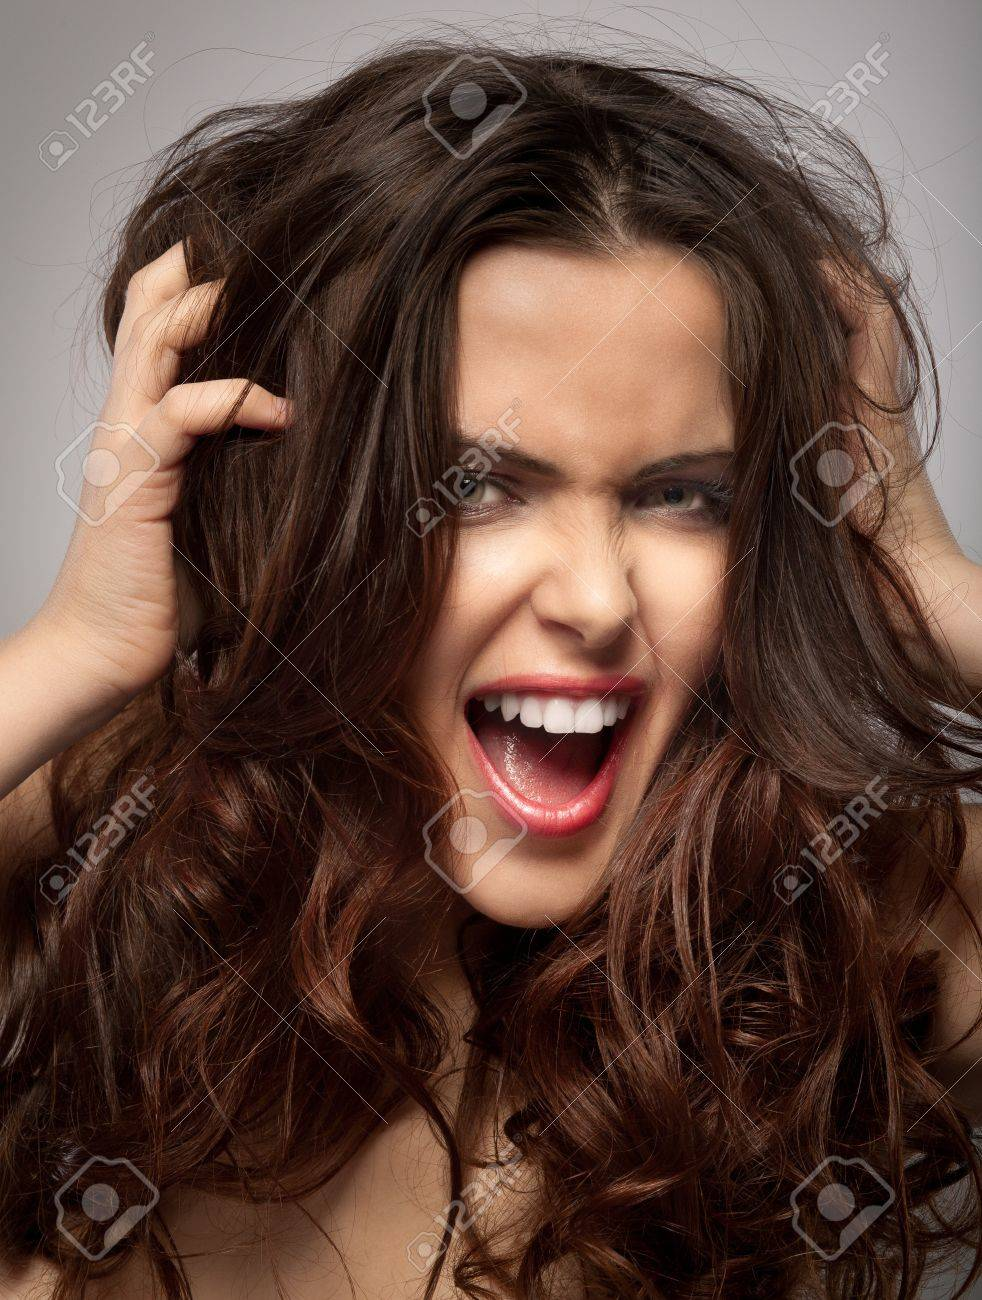 Very frustrated and angry mad woman hands in her hair pulling. Isolated on grey background. Stock Photo - 12145485